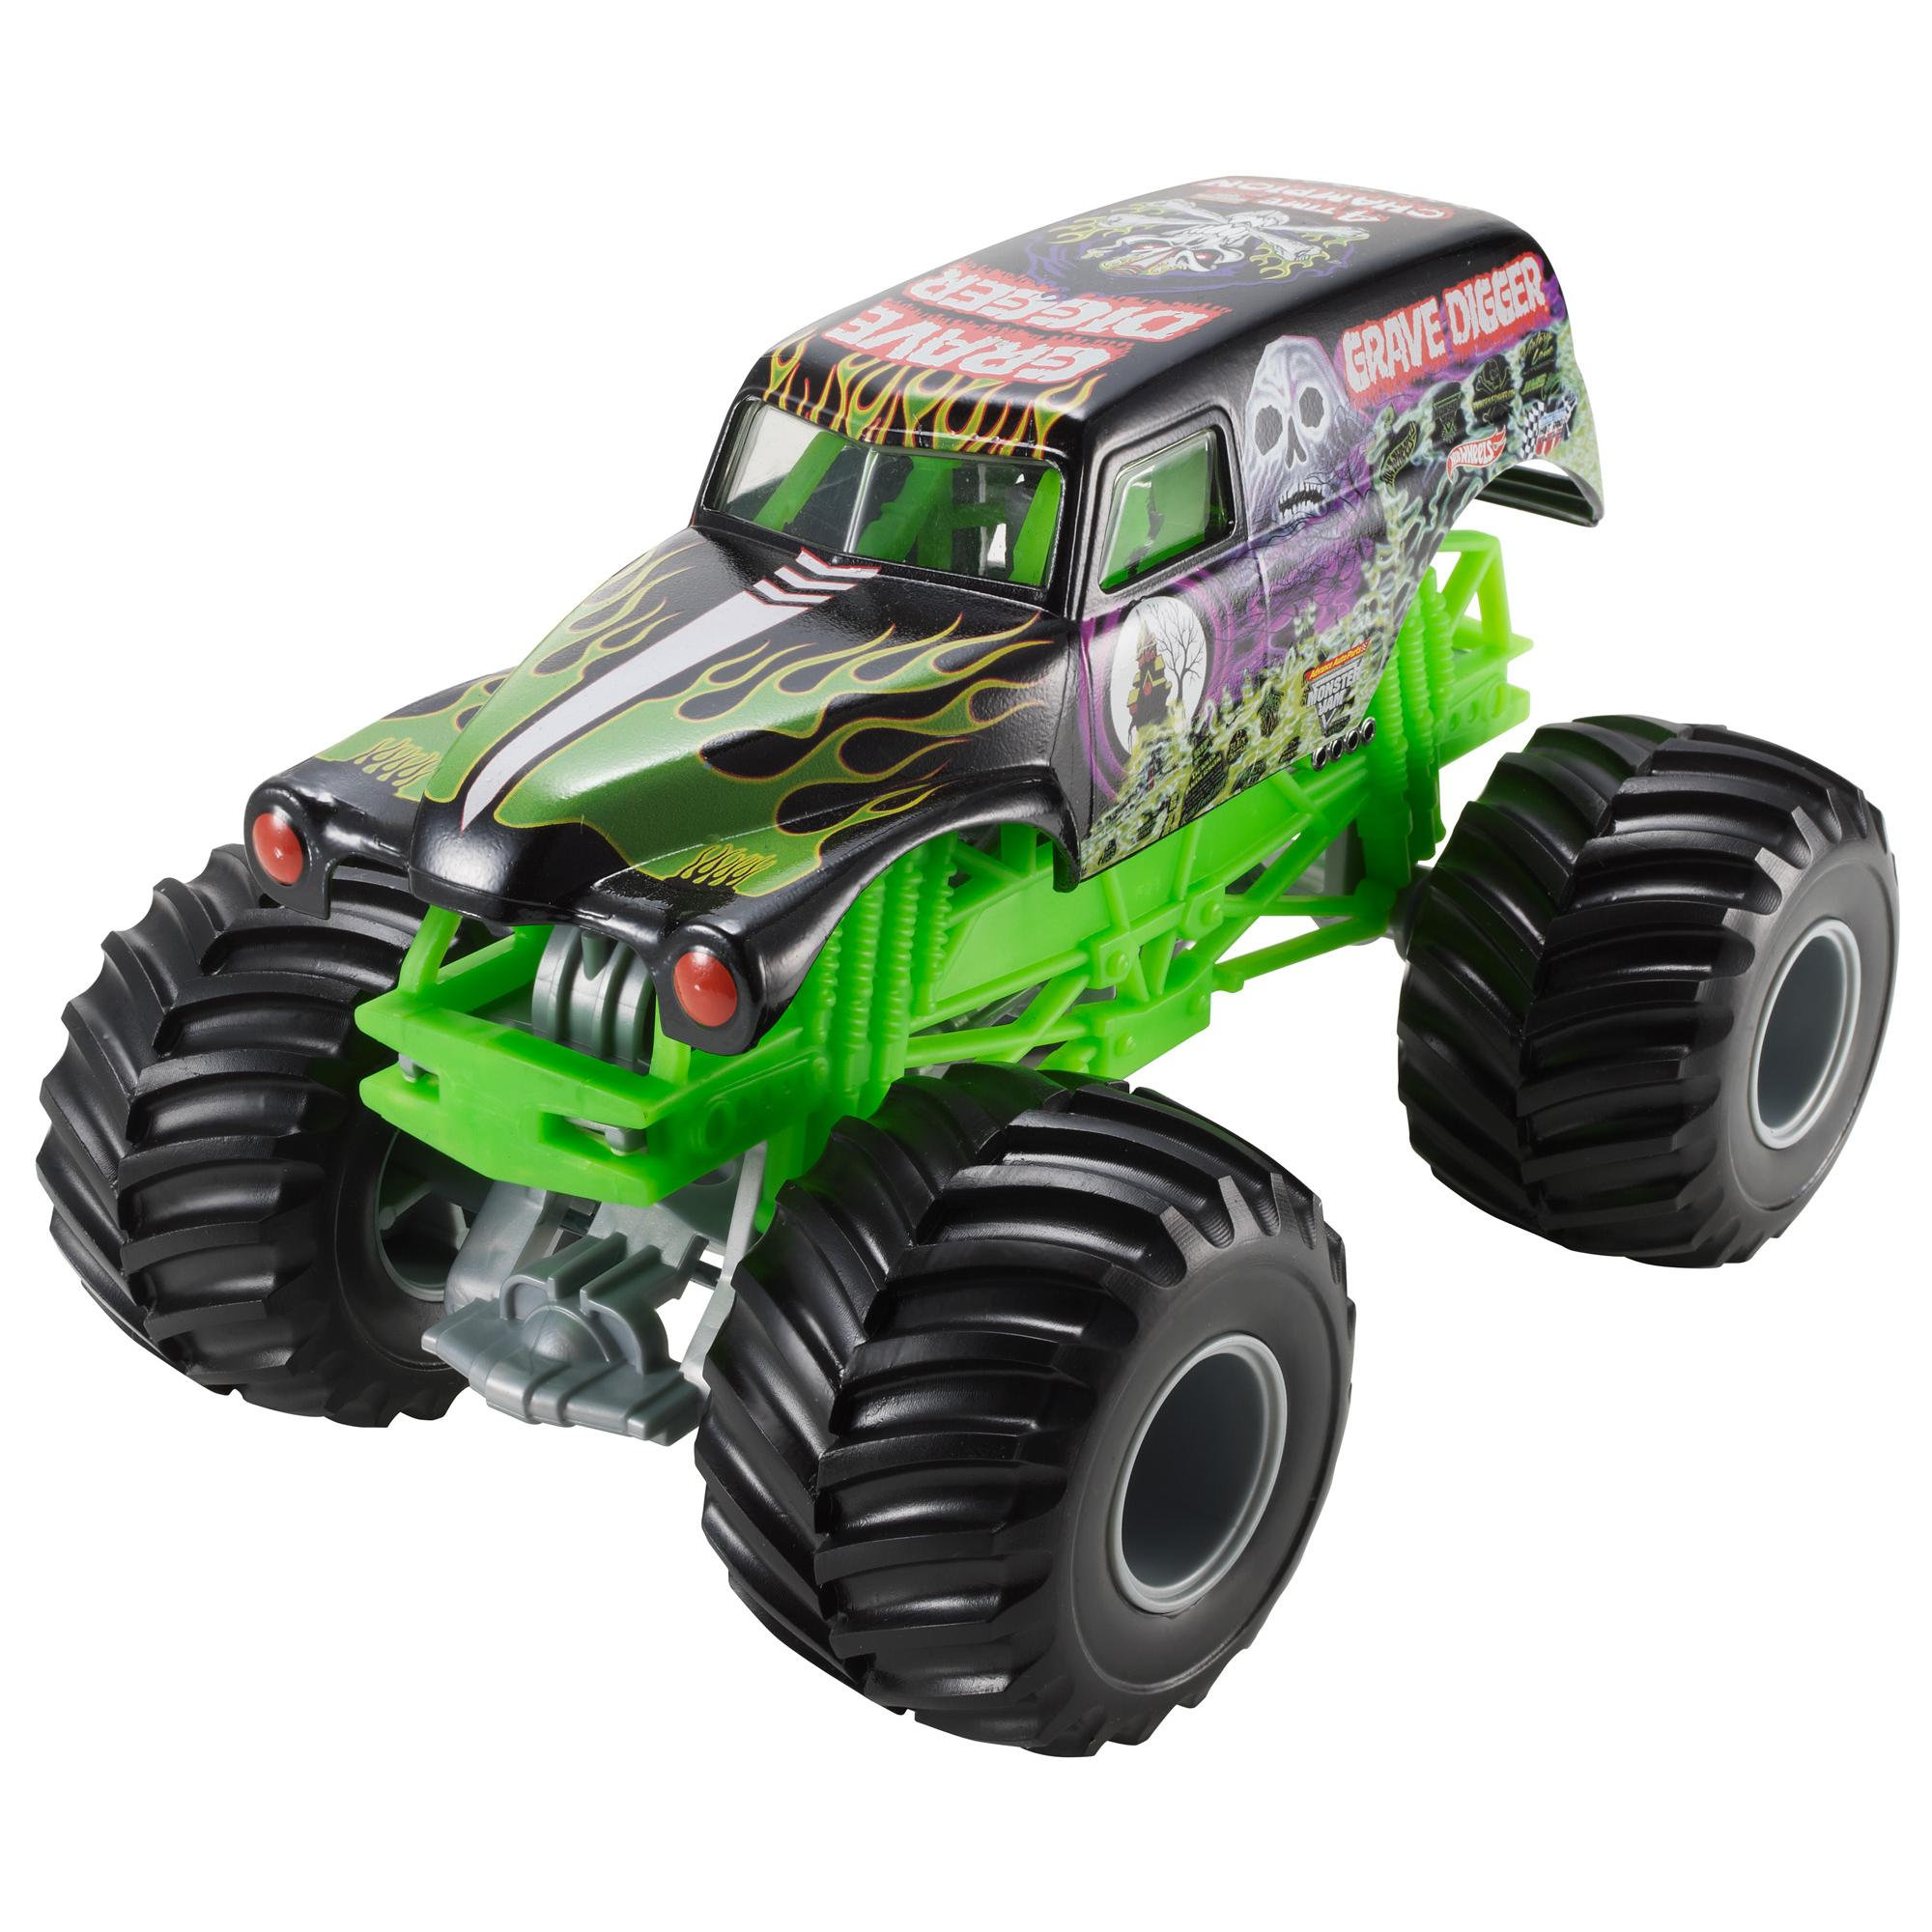 Hot Wheels Monster Jam 1:24 Grave Digger Die-Cast Vehicle